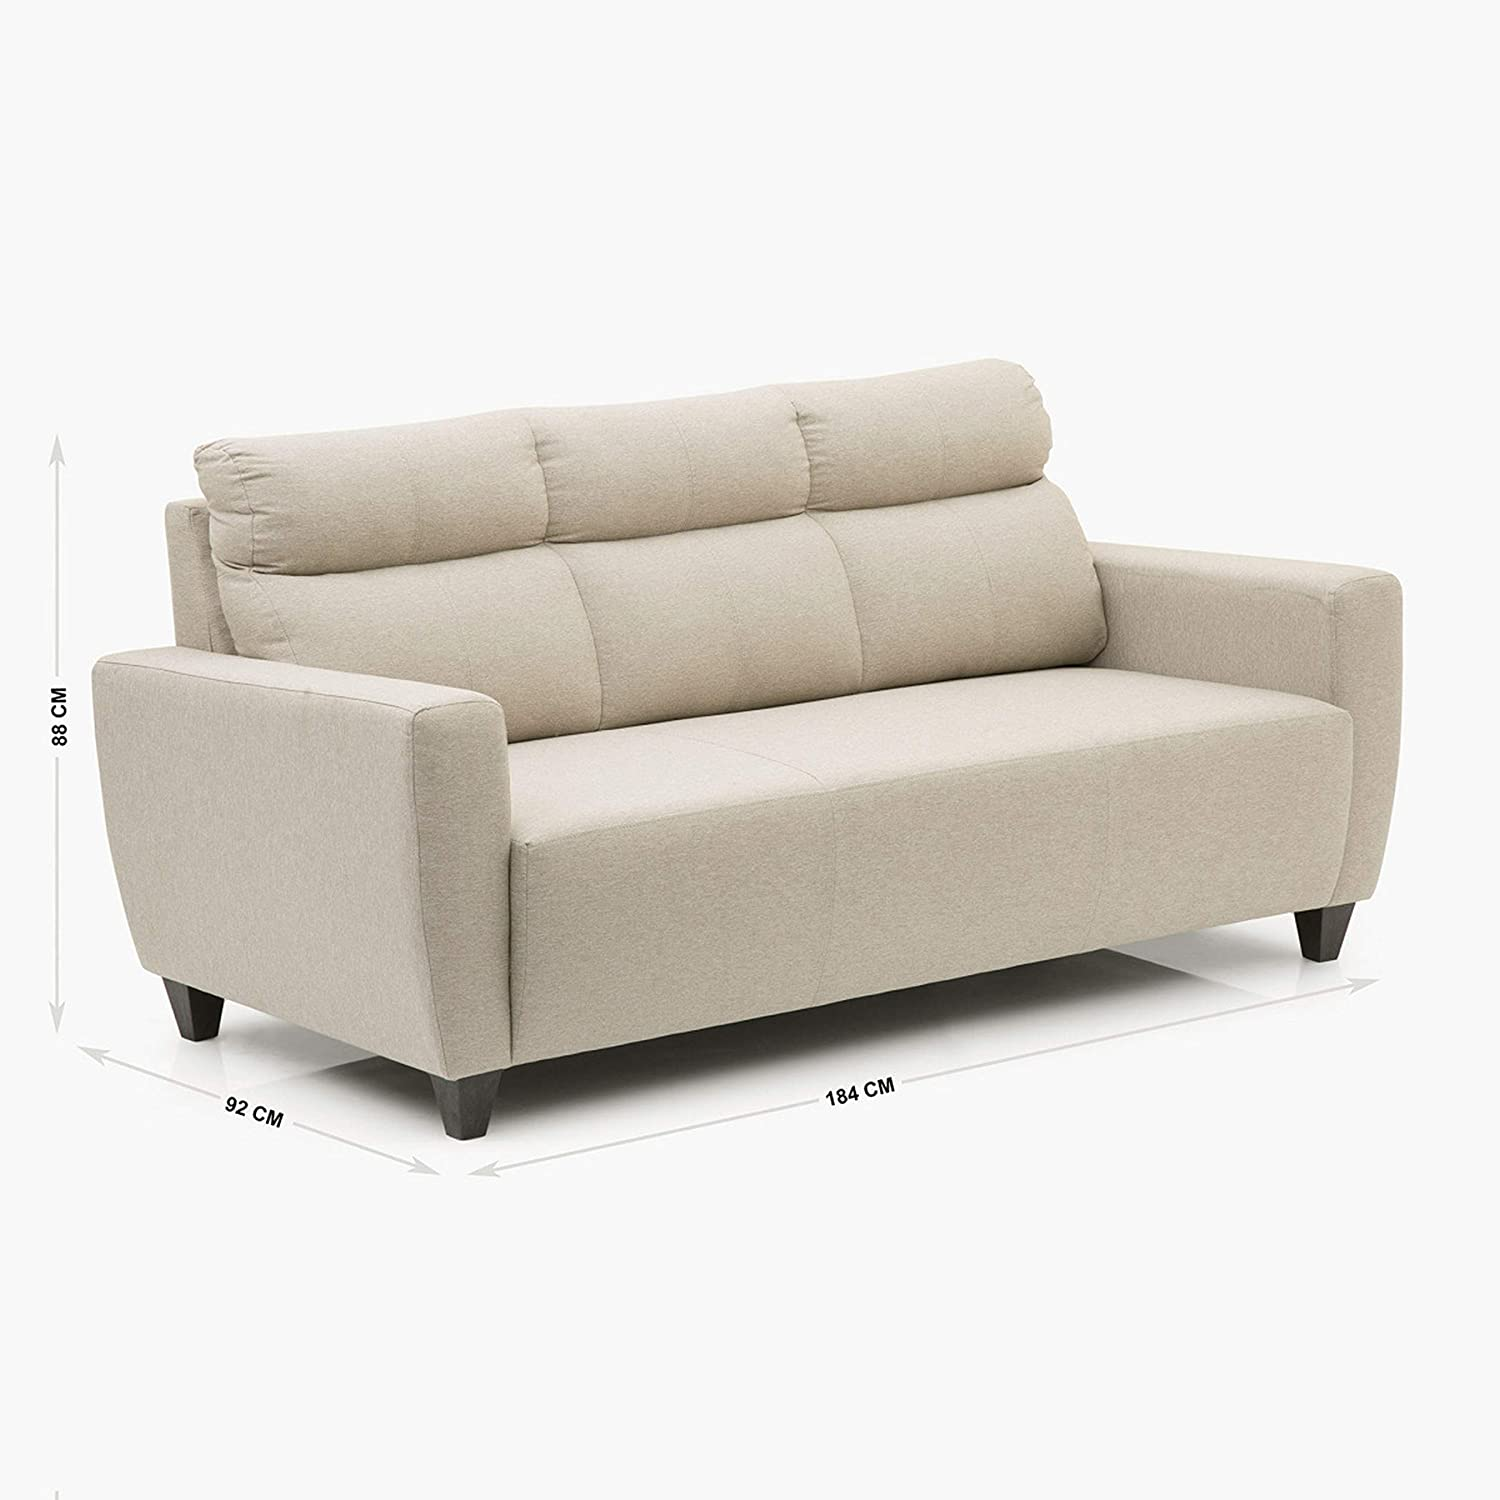 HM Emily 3+2 Sofa Set - Beige Colour